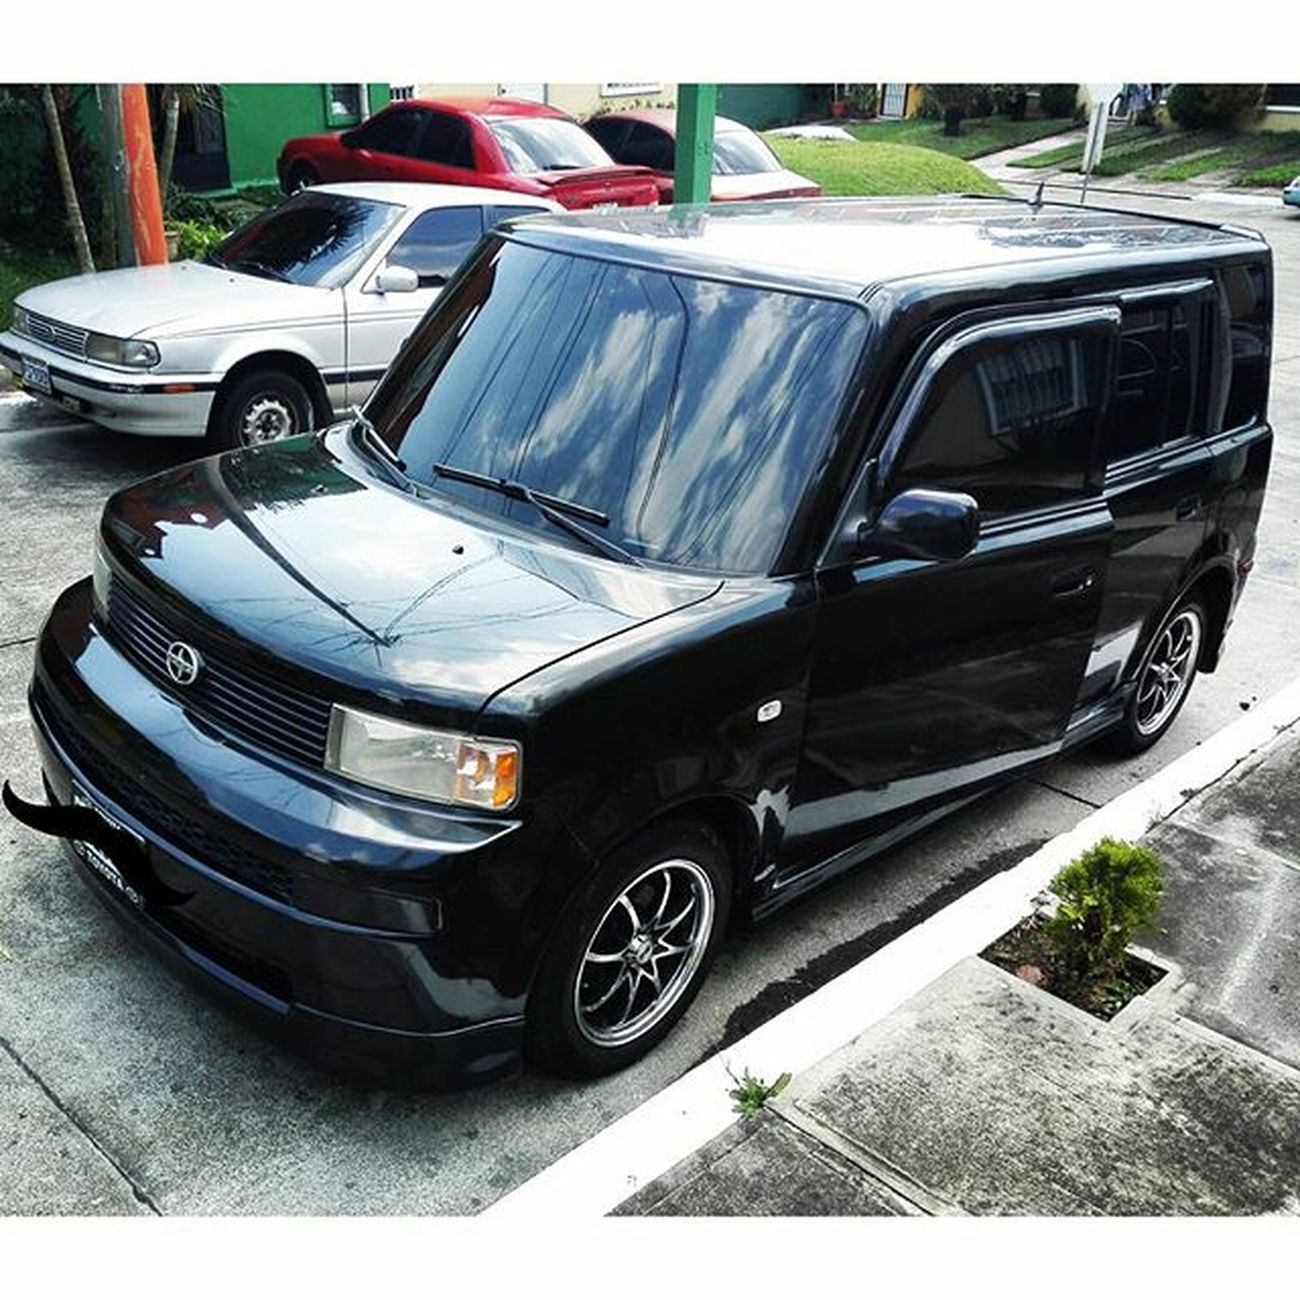 Effort, persistence, patience and most importantly rely on God's plan, these are the key parts in life. My new baby :) Scion  Xb  Boxcar Scionxb